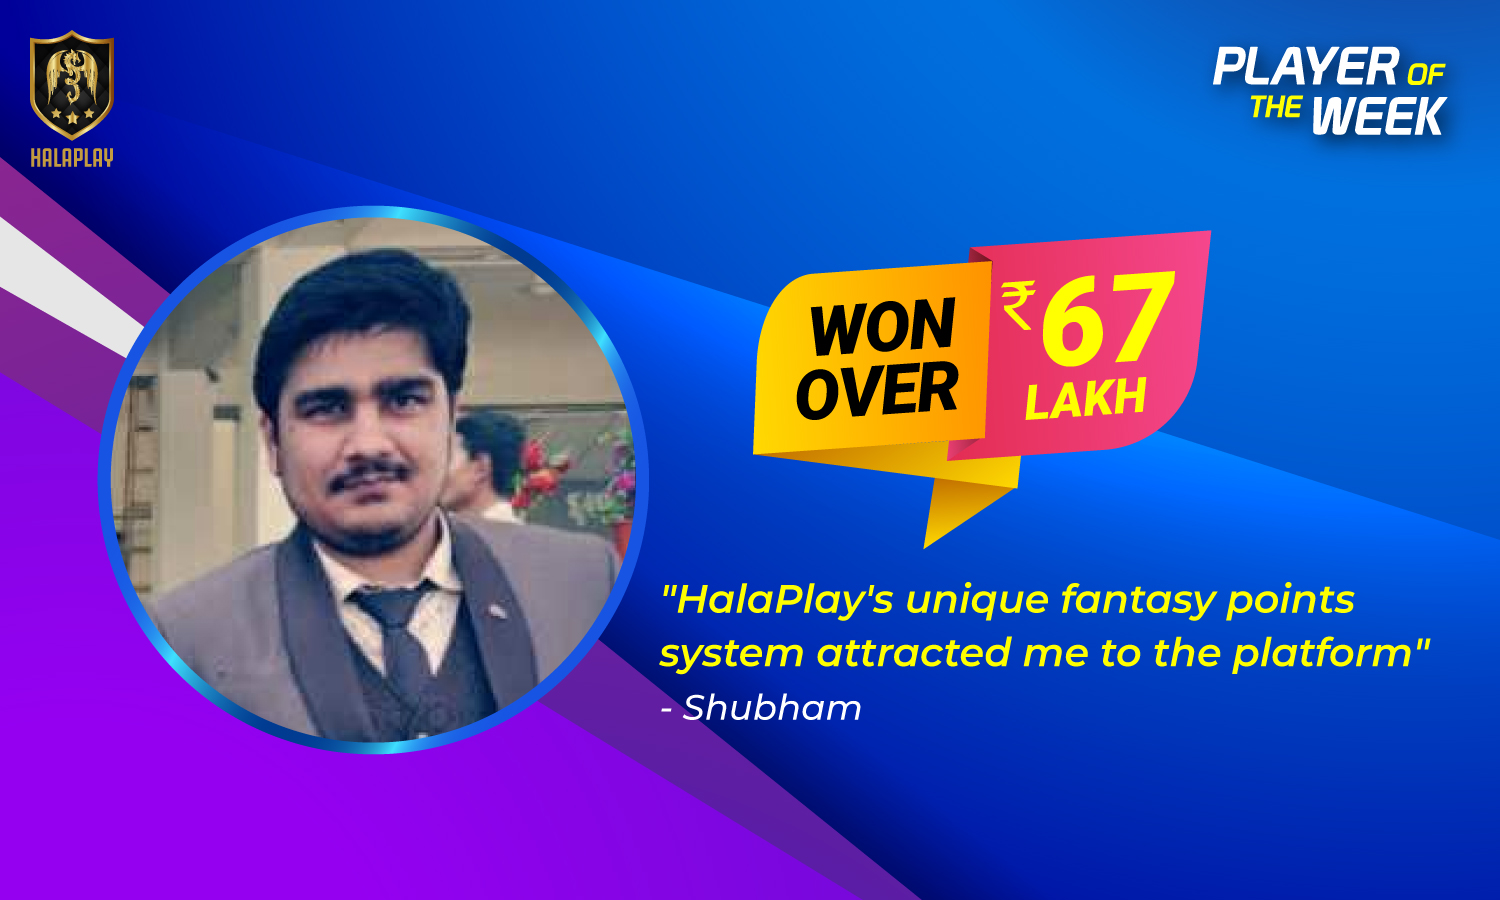 Shubham Jain - HalaPlay fantasy cricket player